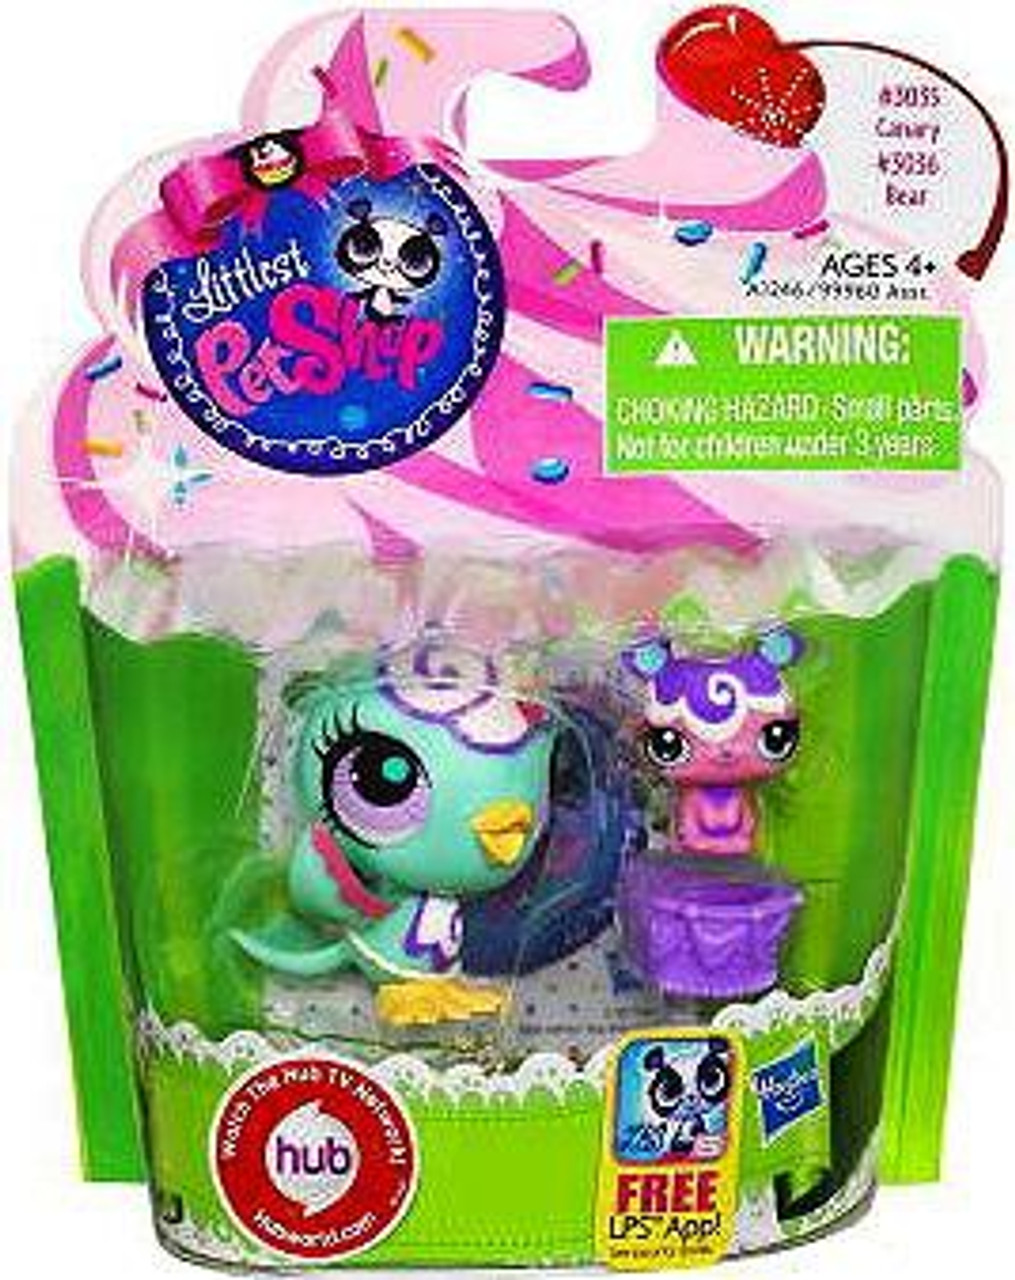 Littlest Pet Shop Canary & Bear Friend Figure 2-Pack #3035, 3036